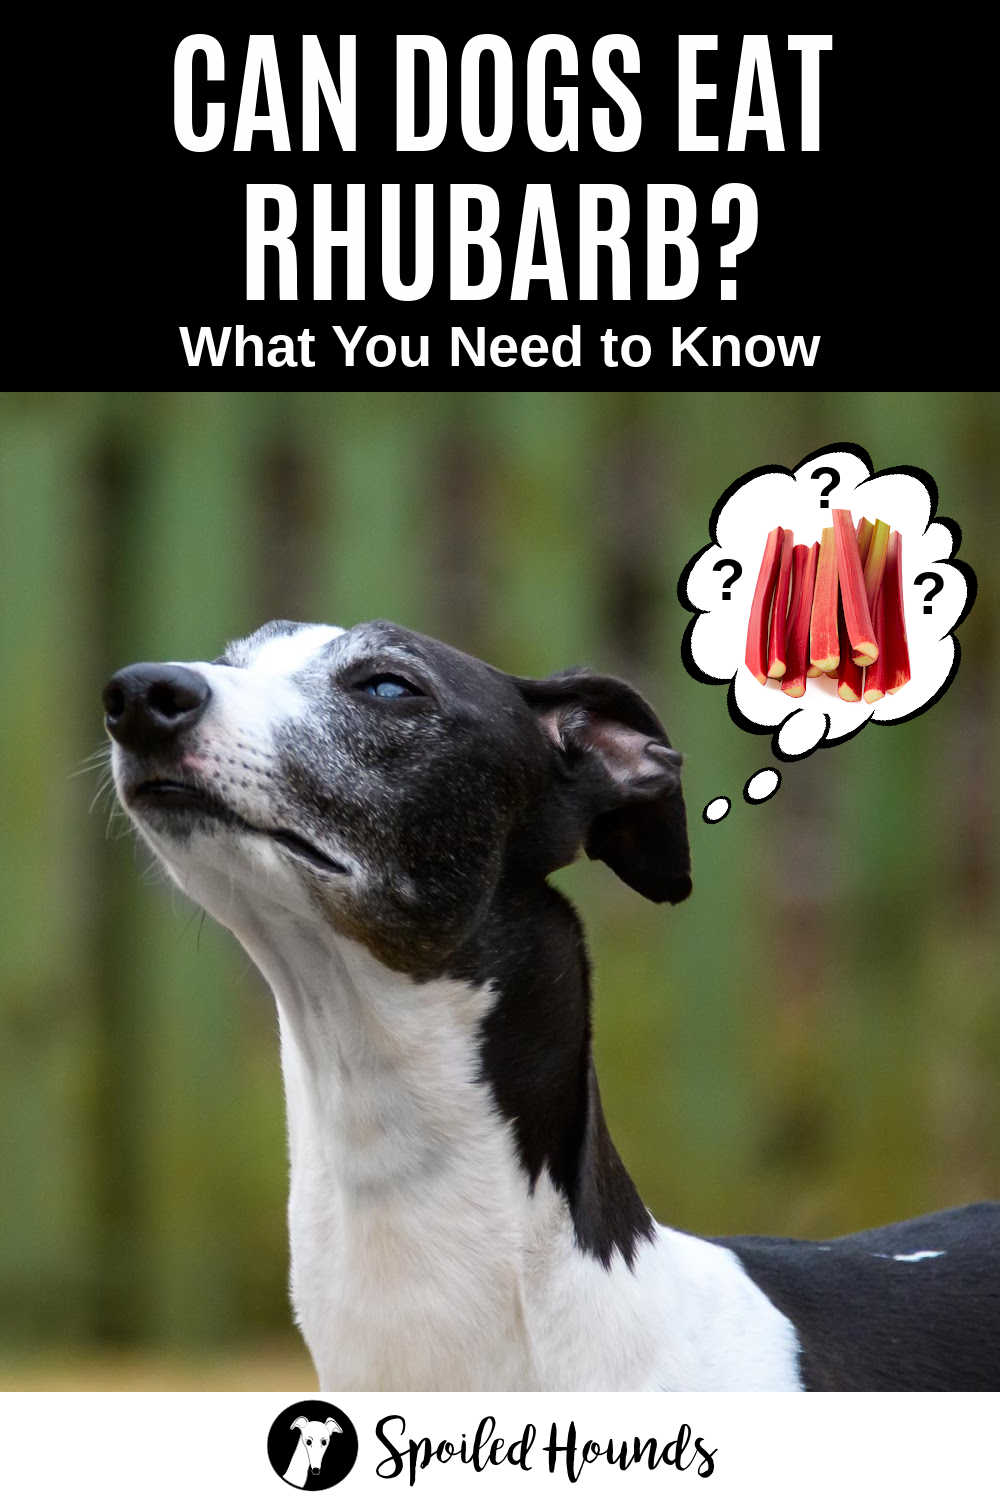 whippet dog wondering about rhubarb